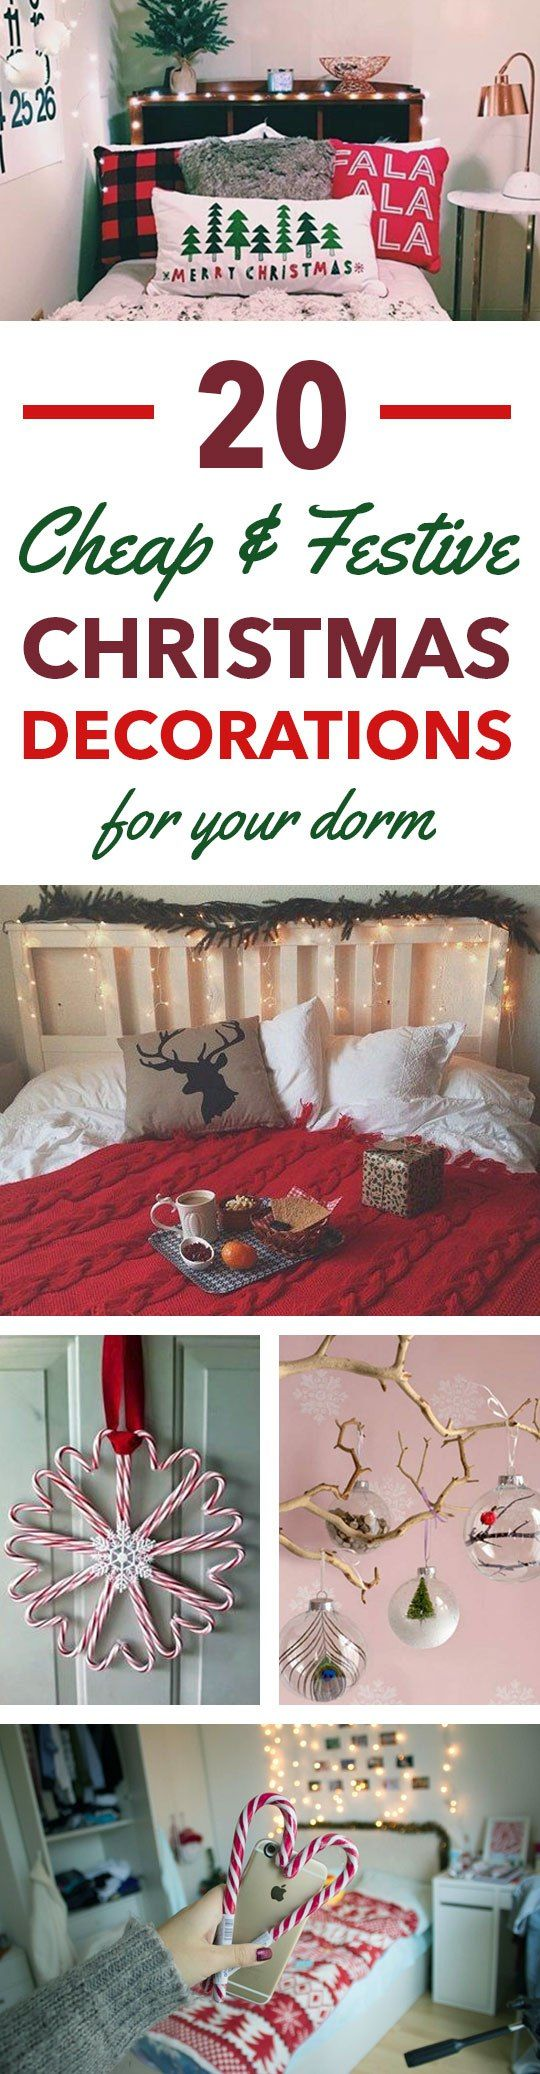 20 Cheap U0026 Festive Items To Decorate Your Dorm For Christmas U2013 SOCIETY19